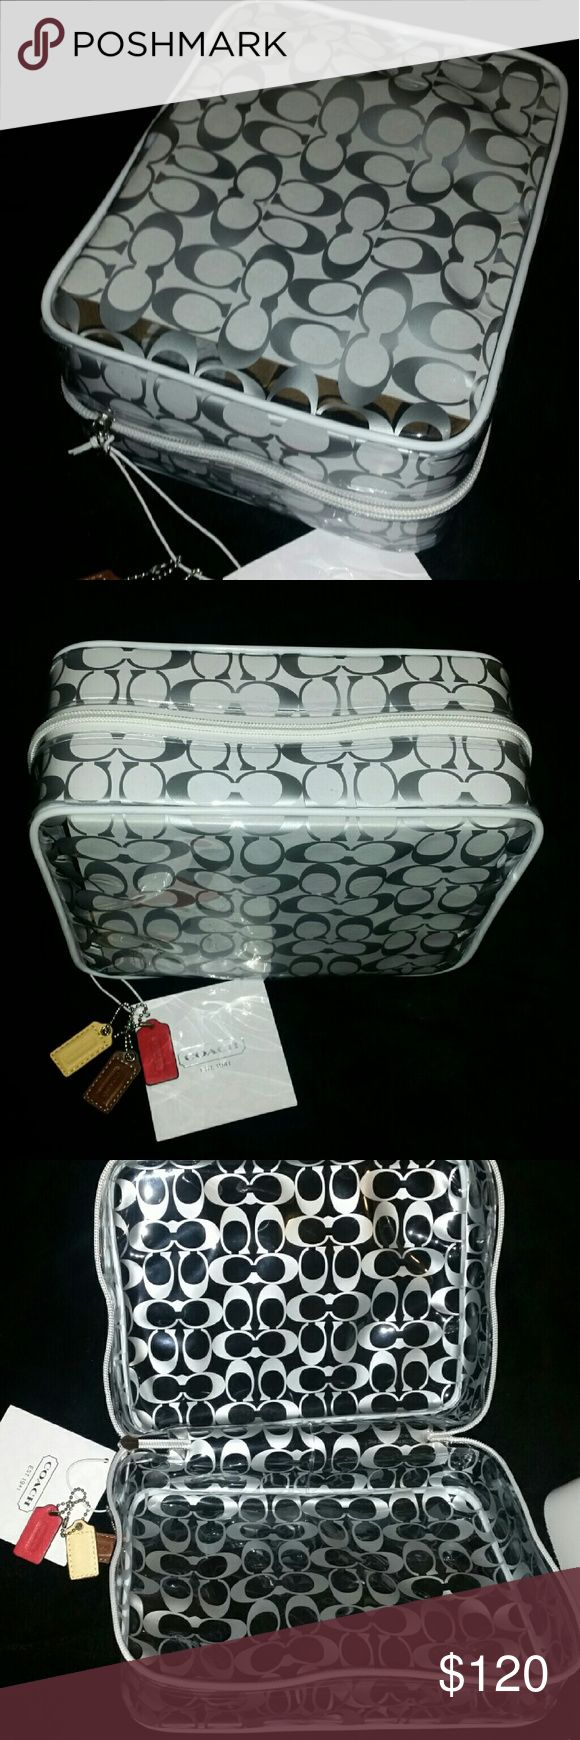 NWT! COACH Clear Cosmetic/Toiletry Travel Case New with tags! Beautiful Coach large cosmetic and toiletry case. Signature logo and comes with three hangtags that can be used as keychain tags. Easy to wipe clean since it is resistant to water! Perfect gift or personal use! Thanks for shopping!  ❌❌ NO TRADES. Thanks. ❌❌  👍👌Serious buyers feel free to submit an offer!💖  Check out my other items! Coach Bags Cosmetic Bags & Cases